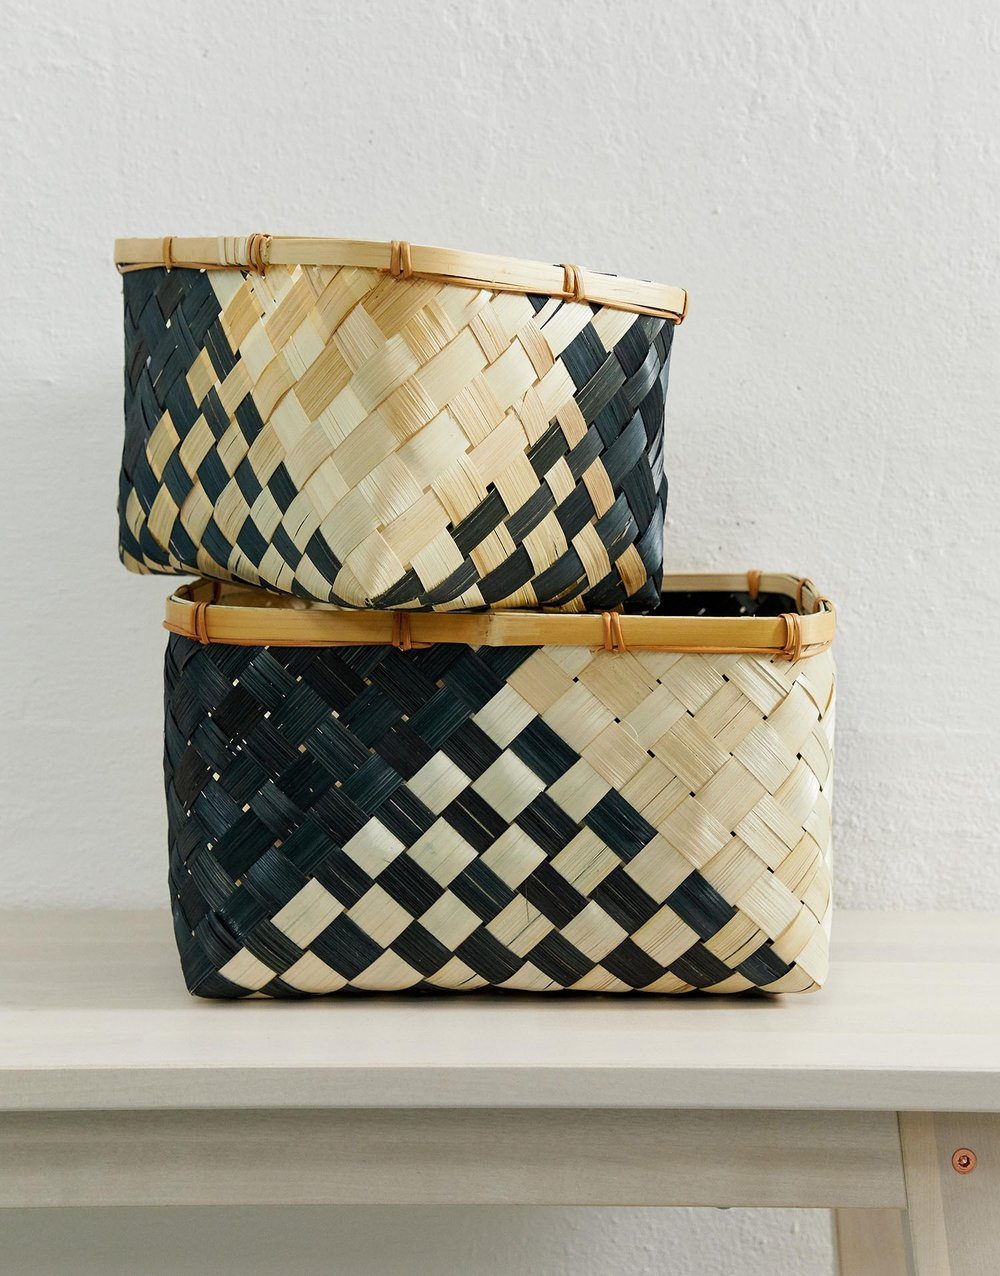 ASOS SUPPLY zig zag baskets £18.00